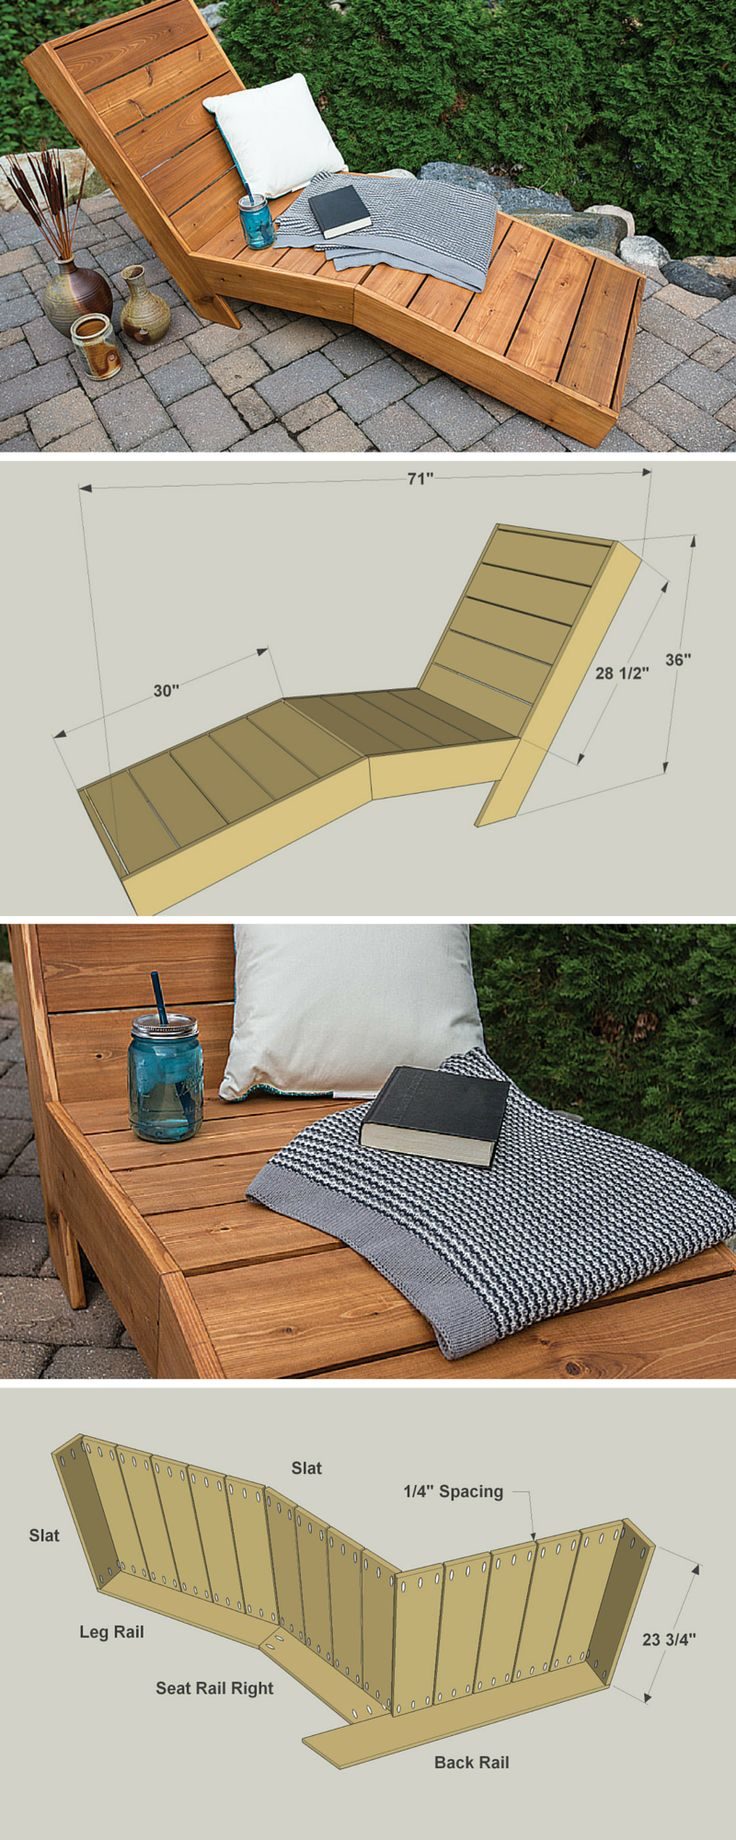 Kick back in comfort outside with this great-looking outdoor chaise lounge. It's built with a shape that cradles your body and keeps you from sliding down. The shape doesn't add much challenge to the build, though. Just cut a few pieces at an angle with your miter saw, and you're all set. FREE PLANS at buildsomething.com